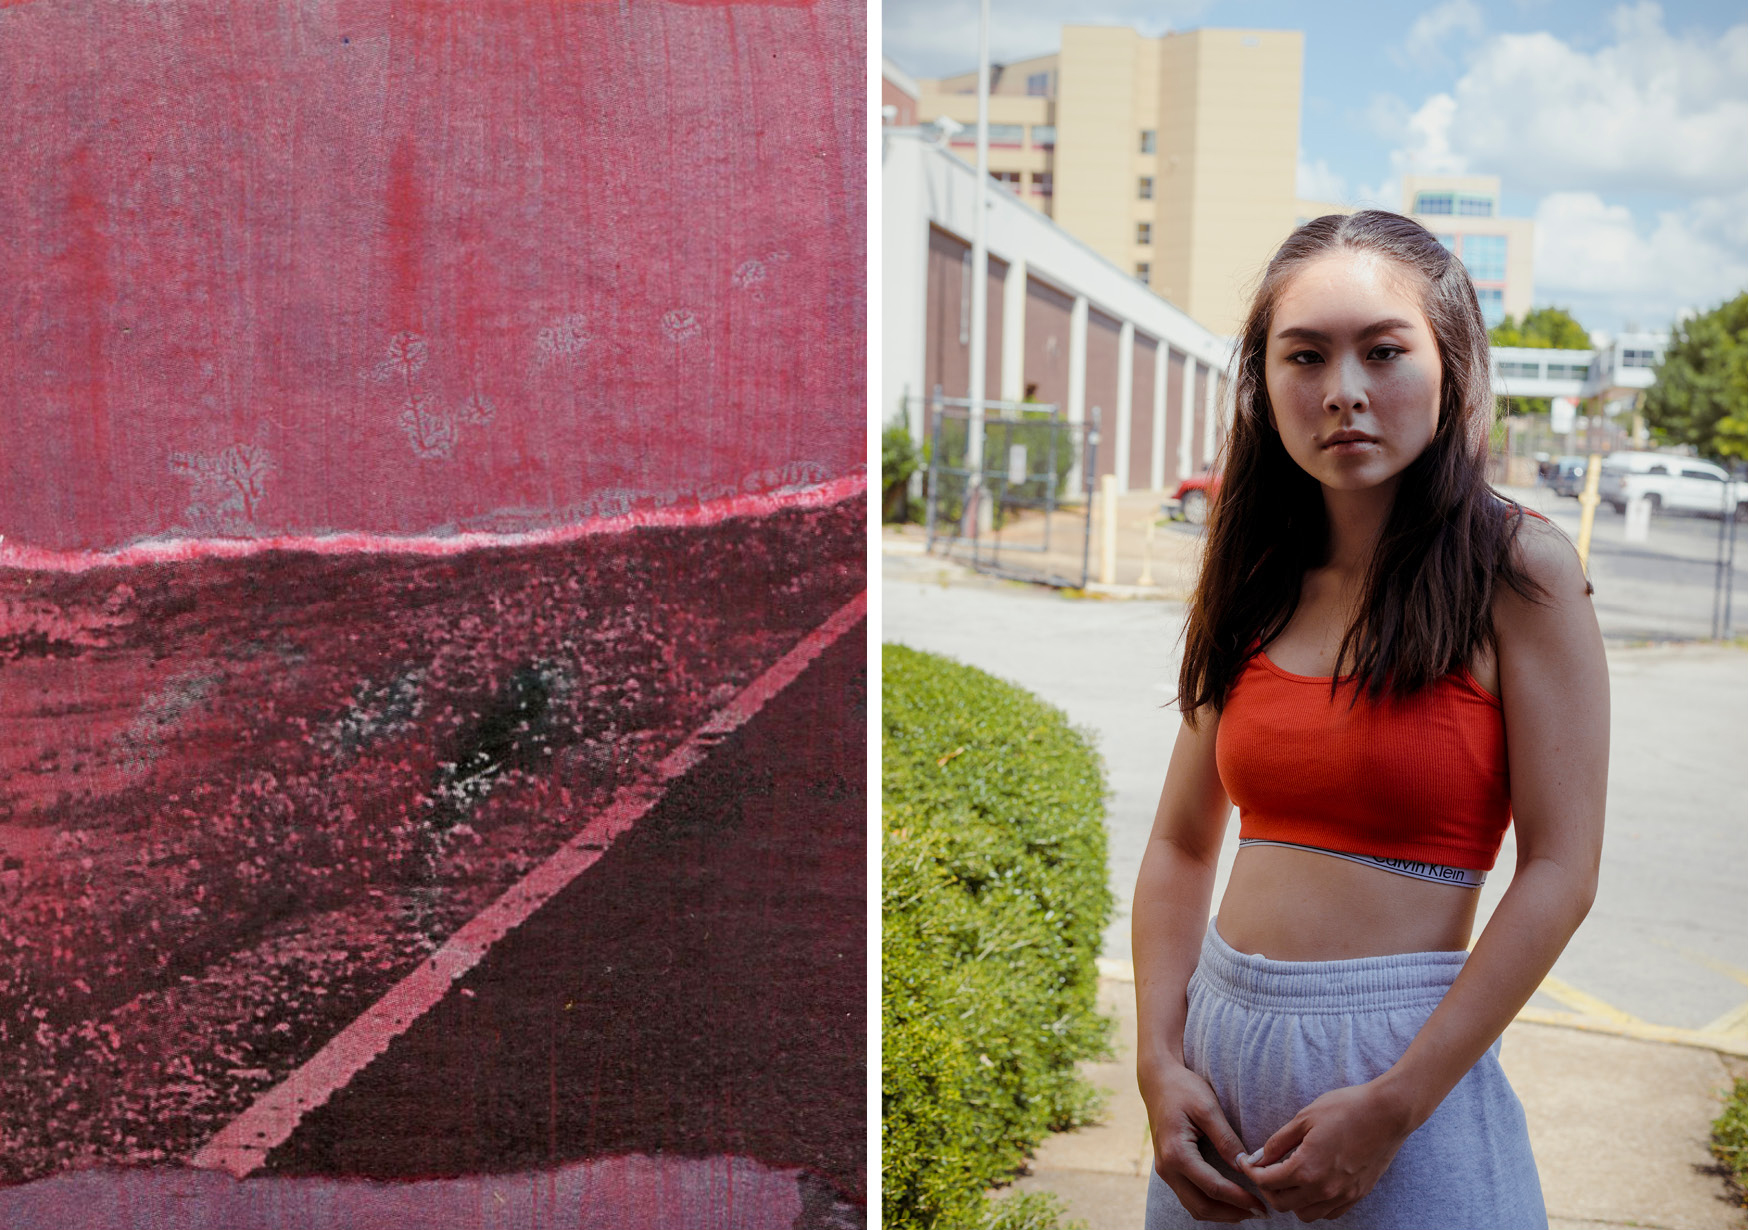 "(left) Candace von Hoffman, Untitled Study 4/16, September 2018, multimedia collage, 4 x 4 inches. (right) Caroline Japal, Ana, 2018, photographic print, 30"" H x 20"" W."